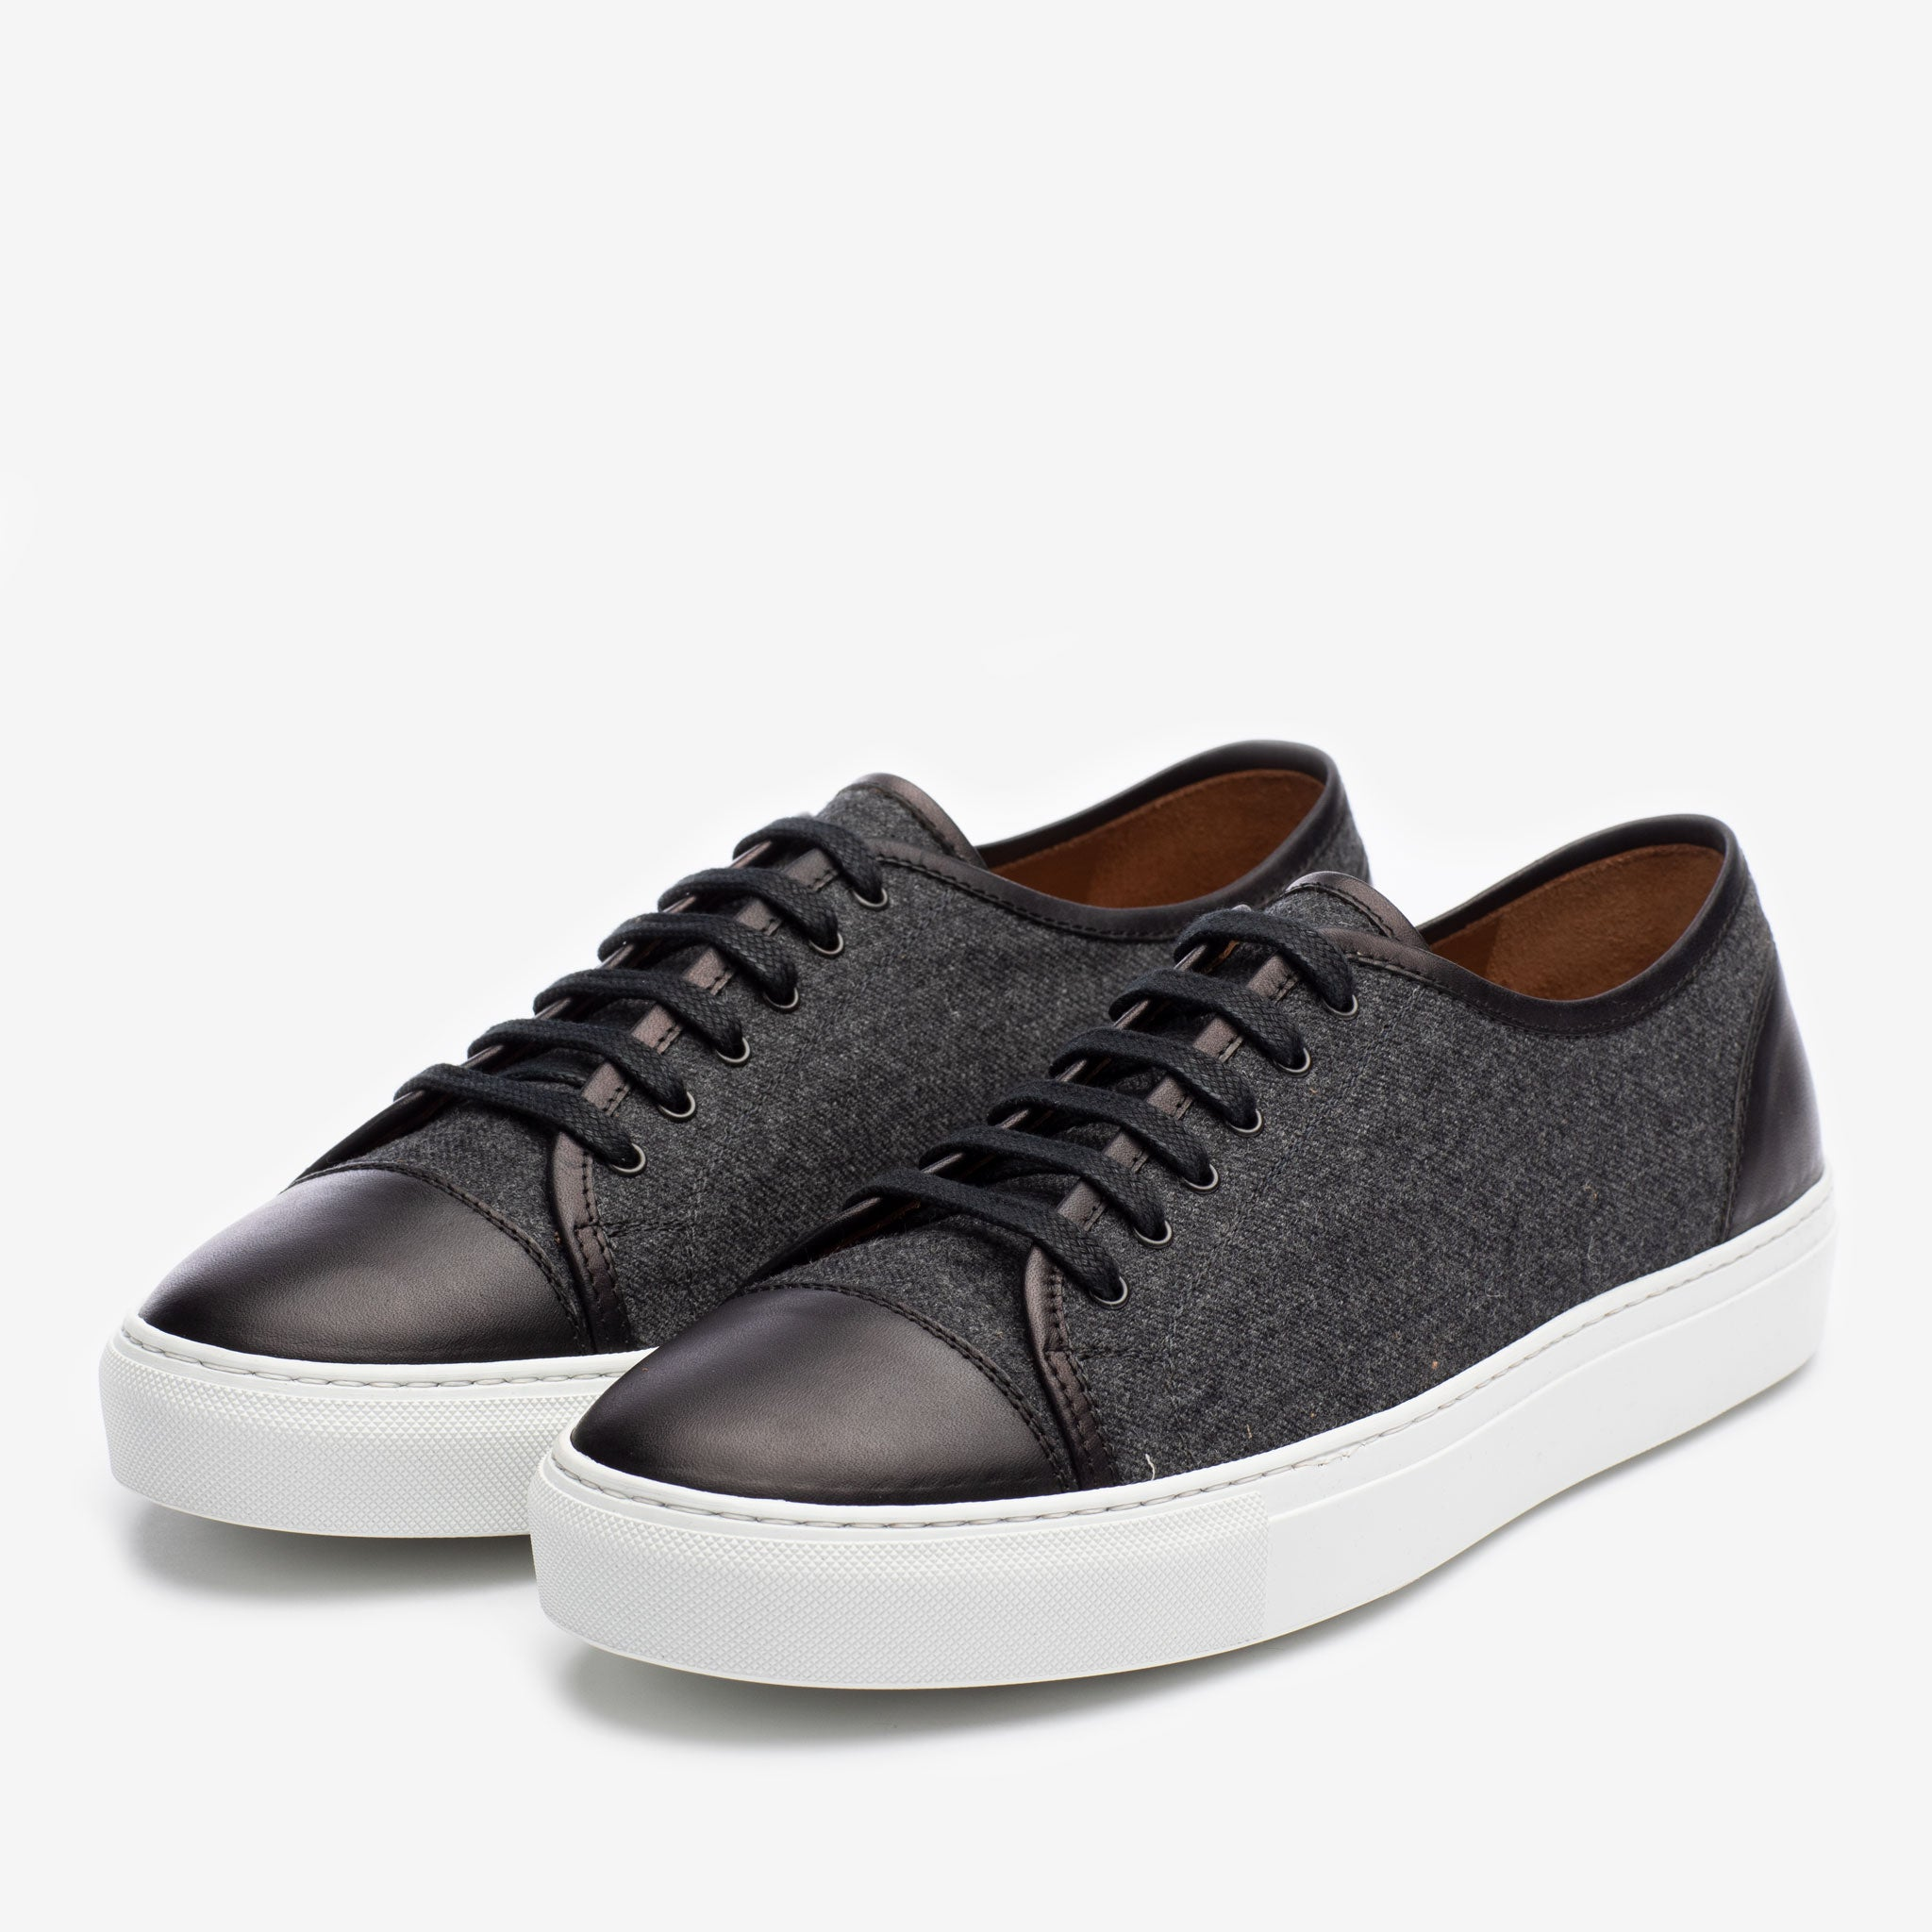 Jack Sneaker in Black Side